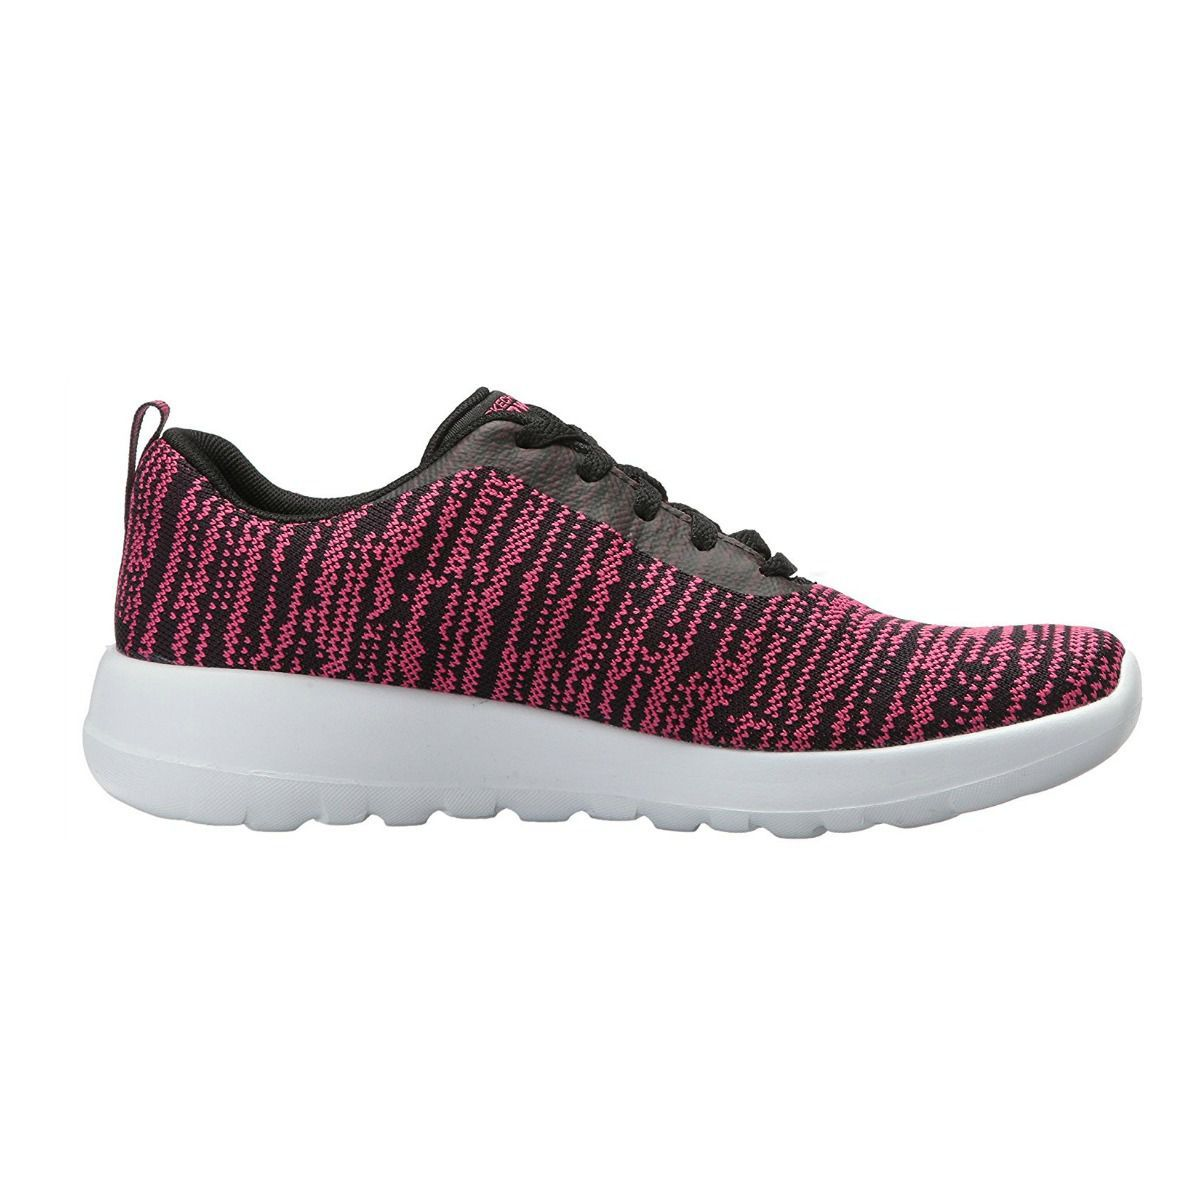 2445d9f102c 20 Best Walking Shoes for Women in 2019 - Most Comfortable Walking Shoes